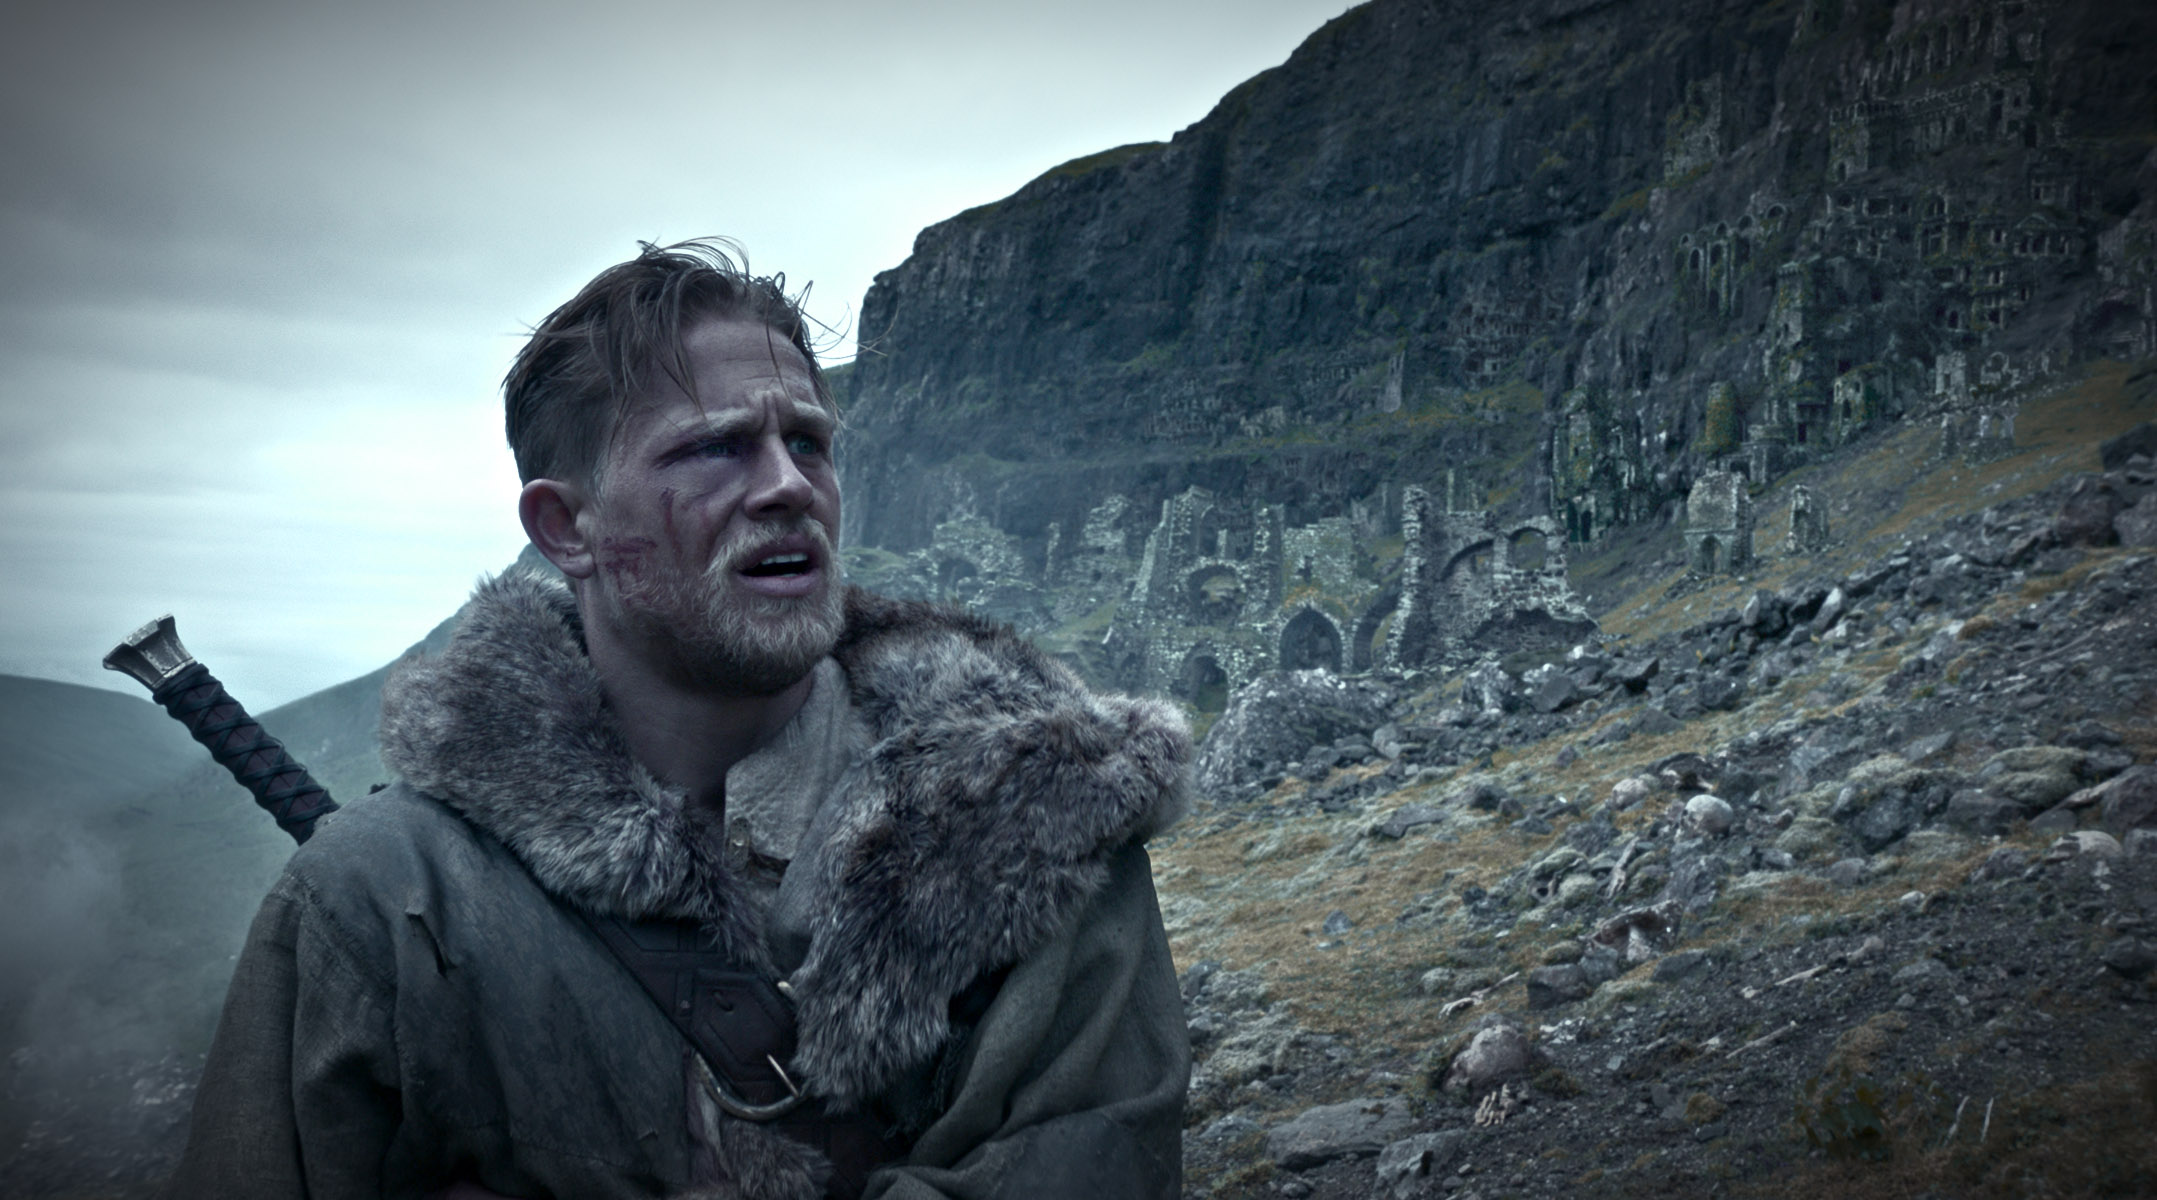 King Arthur Legend Of The Sword Hd Movies 4k Wallpapers Images